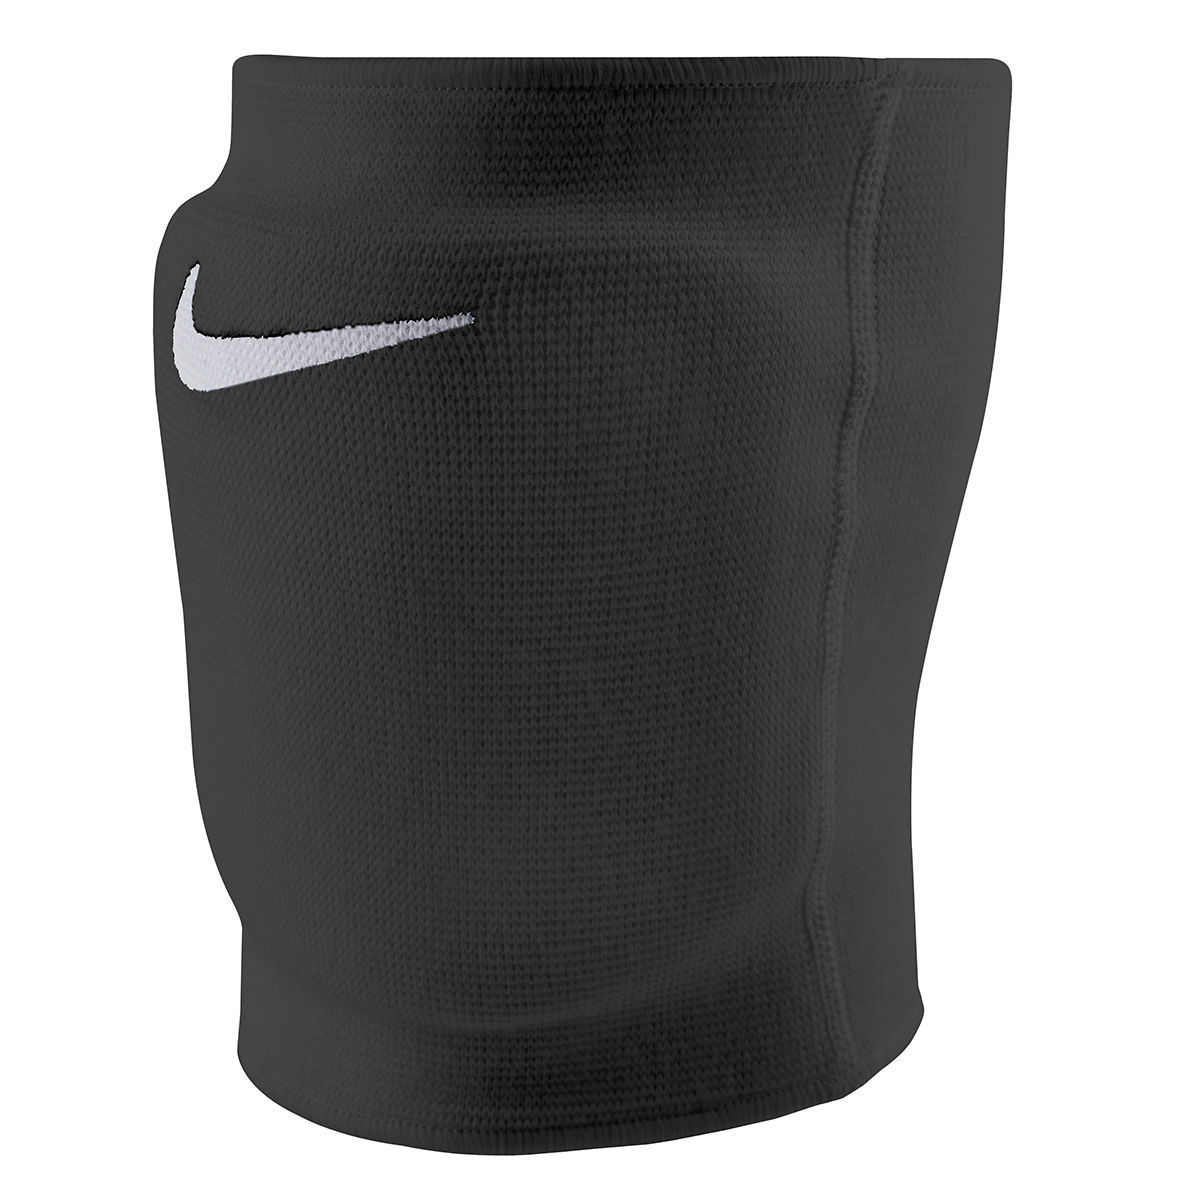 Nike Essentials Volleyball Knee Pad